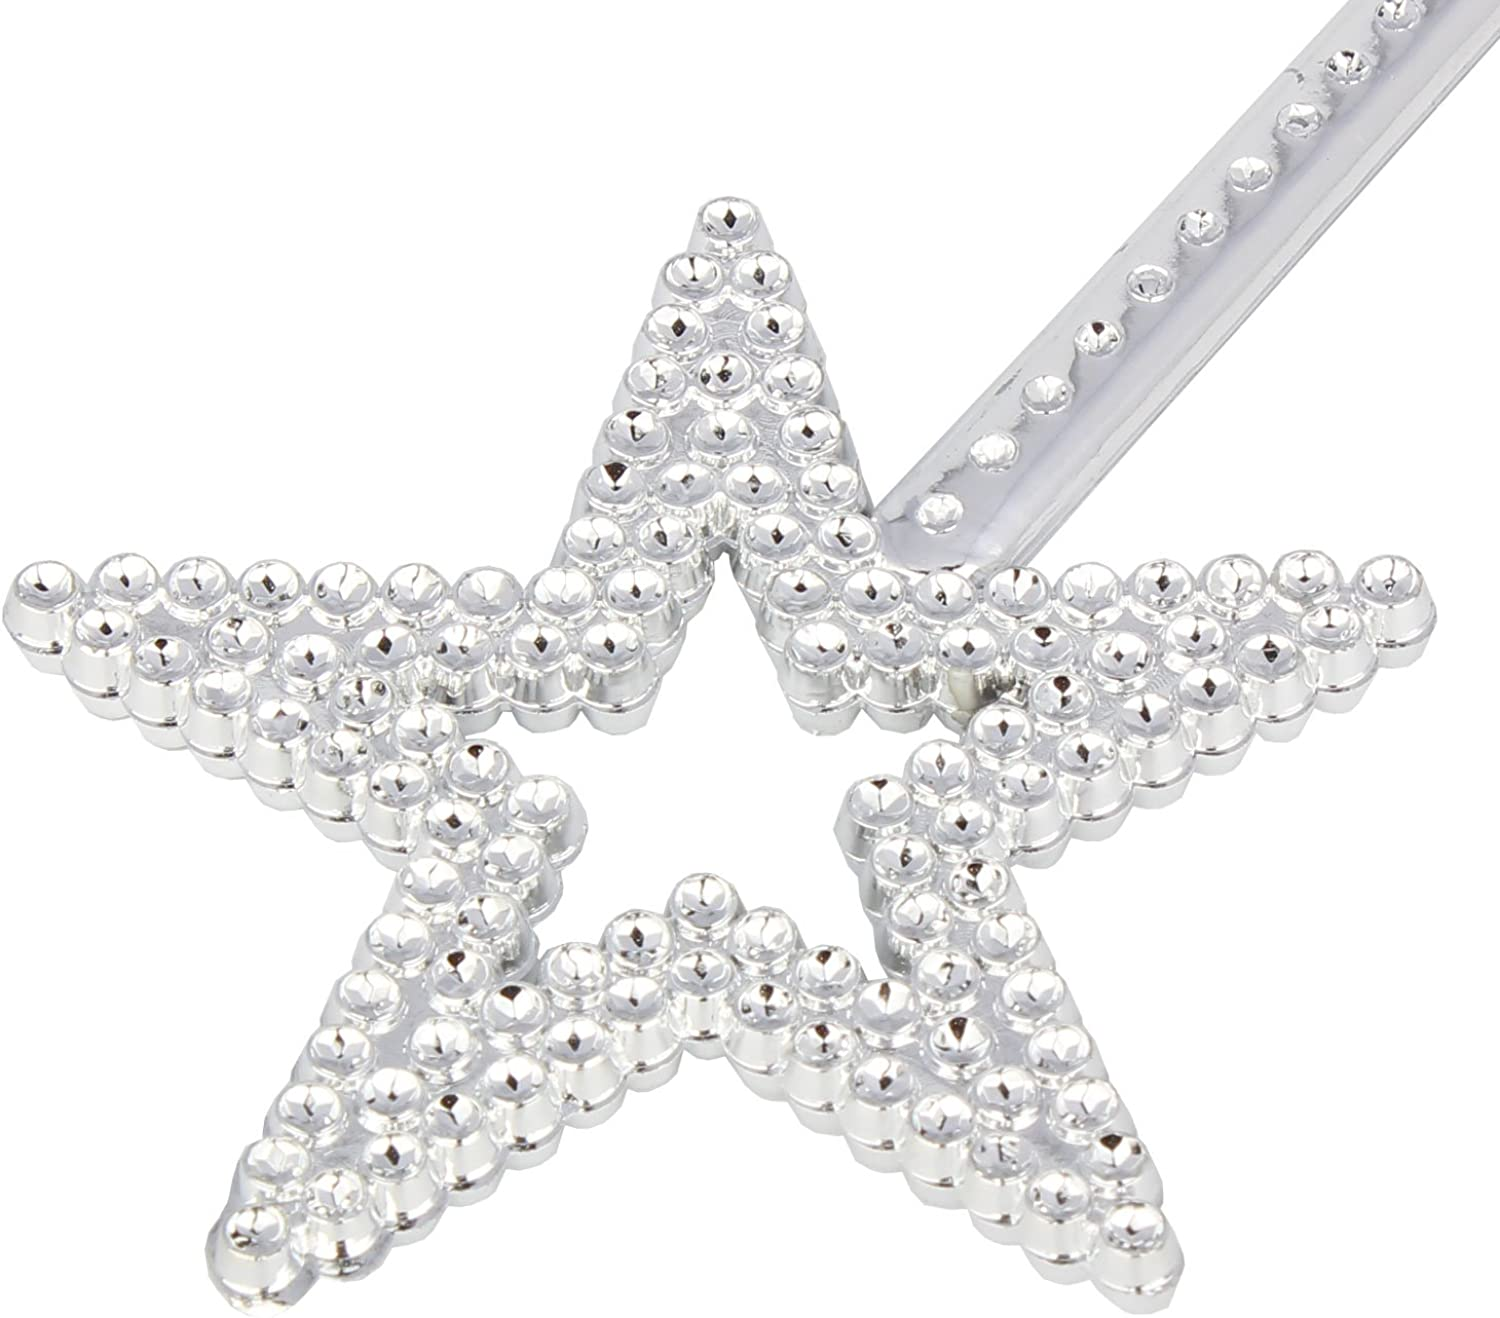 XiangGuanQianYing Sequin Star Wand Handhelds Party Favors 5 Pack